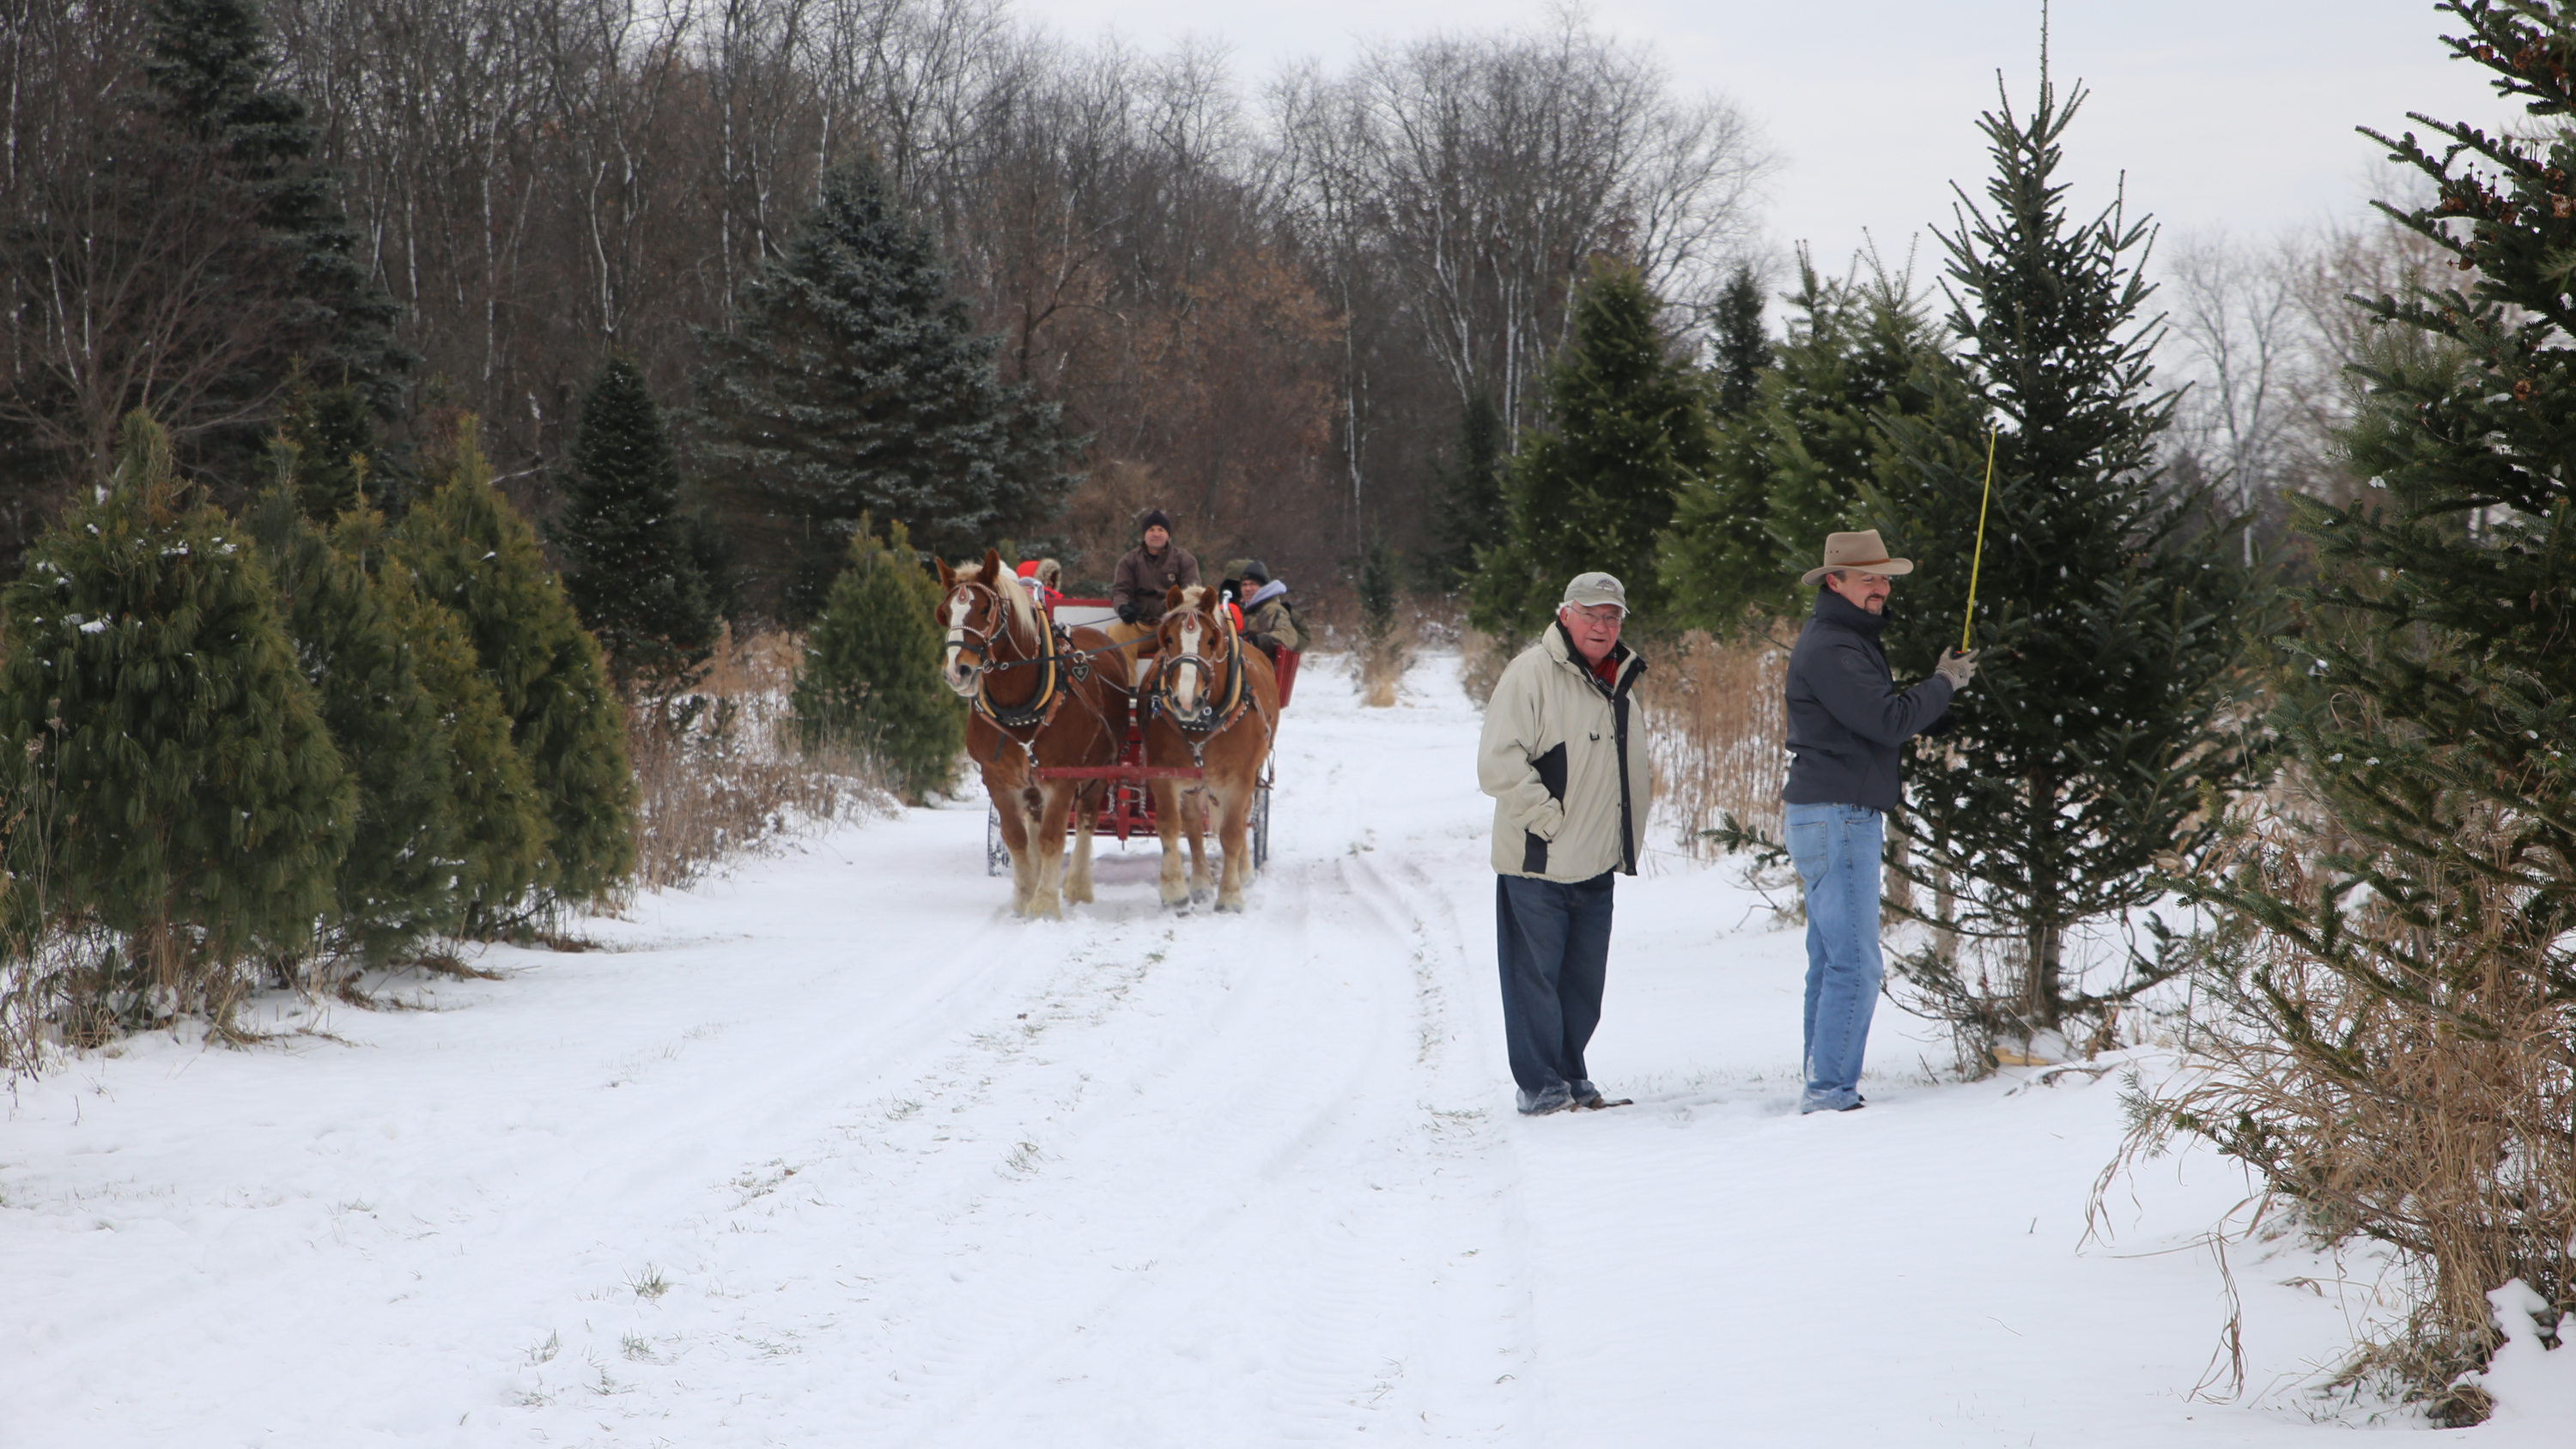 bens christmas tree farm - Christmas Tree Farm Near Me